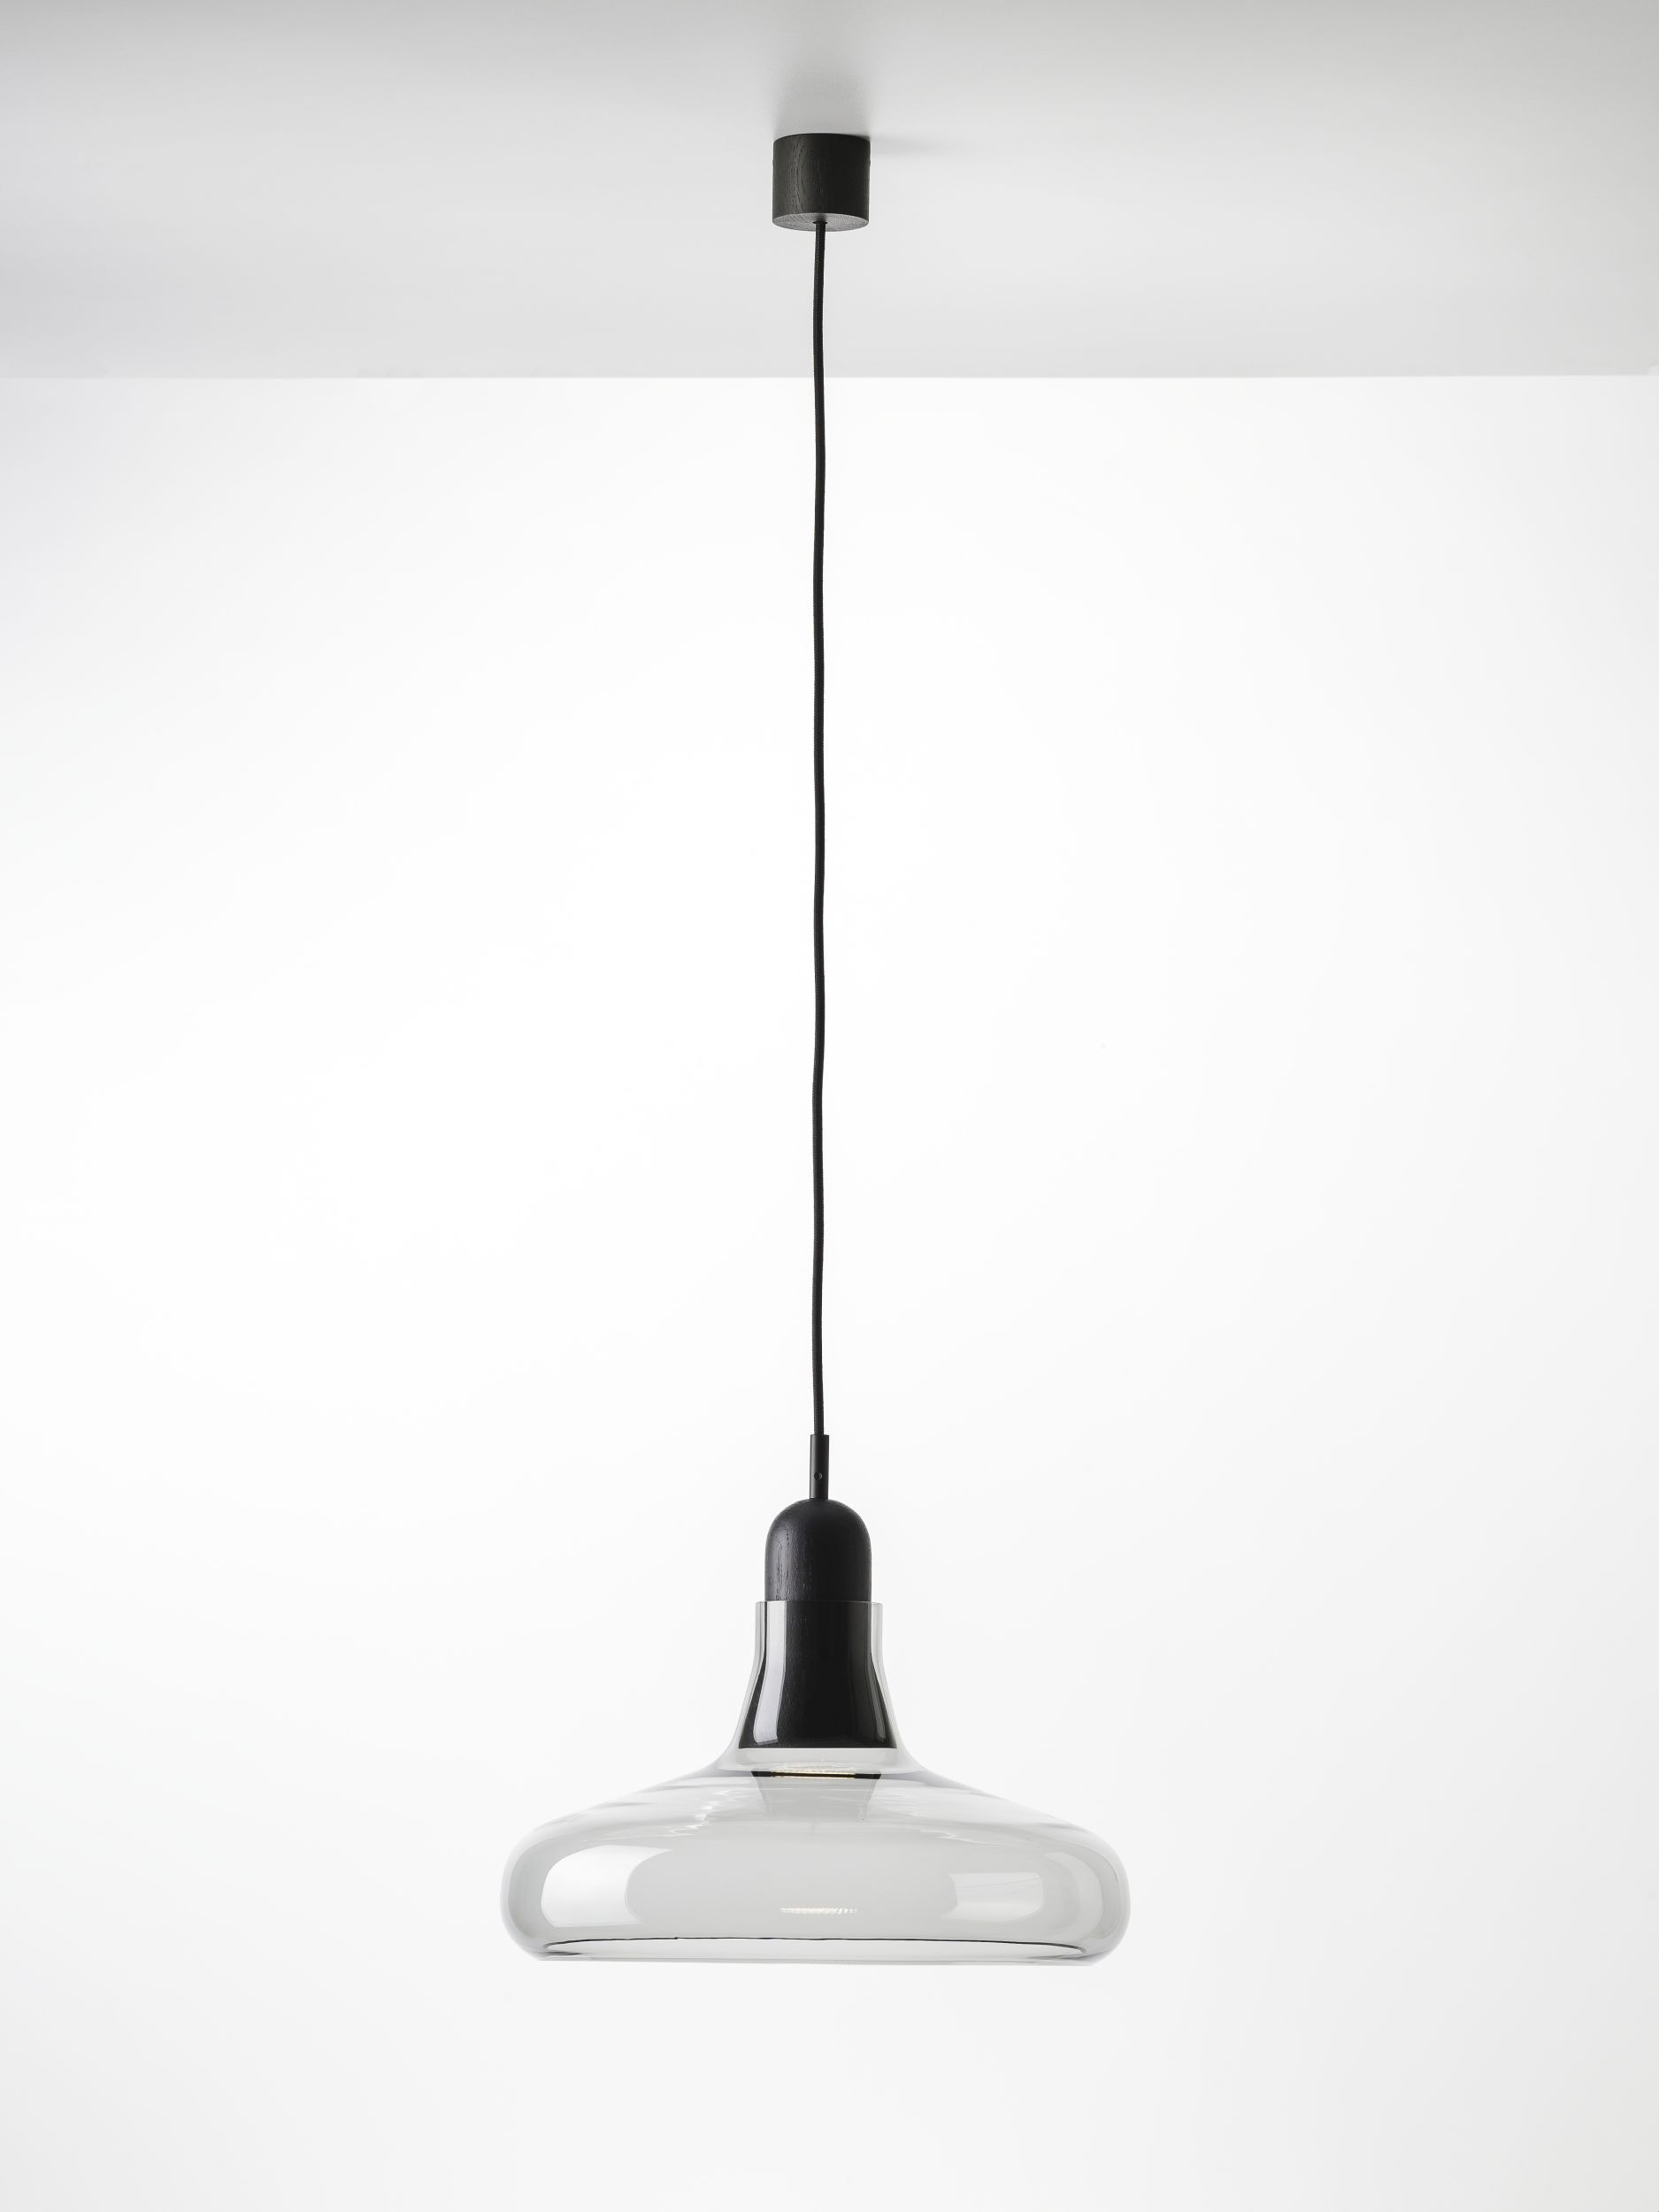 Shadow Pendant Lamp - <p>The Shadows collection is a take on the famed, timeless lights found in French ateliers, and its typology pays tribute to that legacy. The combination of handblown glass, handcrafted wood, and classic shaping has given rise to a light of ageless elegance. The collection comprises four different suspension lights, as striking alone as they are in sets, characterized by a handblown glass shade set upon on a handcrafted wooden body. The clean contours and finish are accentuated by the concealed light source. The Shadows collection is special not only for its wide spectrum of glass colour options, surface finishes, and types of wood but also because the lights can be combined into sets according to customer requirements. They are intended for interiors and, thanks to multiple combination possibilities, are well suited to a broad range of installations. Both the Shadows and Shadows XL collections have special integrated connectors developed by Brokis to facilitate installation and cleaning. The craftsmanship applied in production follows in the centuries-old tradition and experience of master glassmakers. The precision crafting of hand-blown glass instills distinctive, enduring character and outstanding quality in all Brokis products. The glass shades are formed from multiple layers of molten glass, each of which is scrutinized by the master glassmaker prior to being blown into the mold. Up to 70% of the resulting quality is achieved in this stage of production. No less attention to detail is paid in handcrafting the wooden elements of the light. Each piece is individually processed by the artisan in a series of strictly observed production stages. We take special care in selecting quality fine wood and ecologically friendly materials to treat it with.</p>  | Matter of Stuff